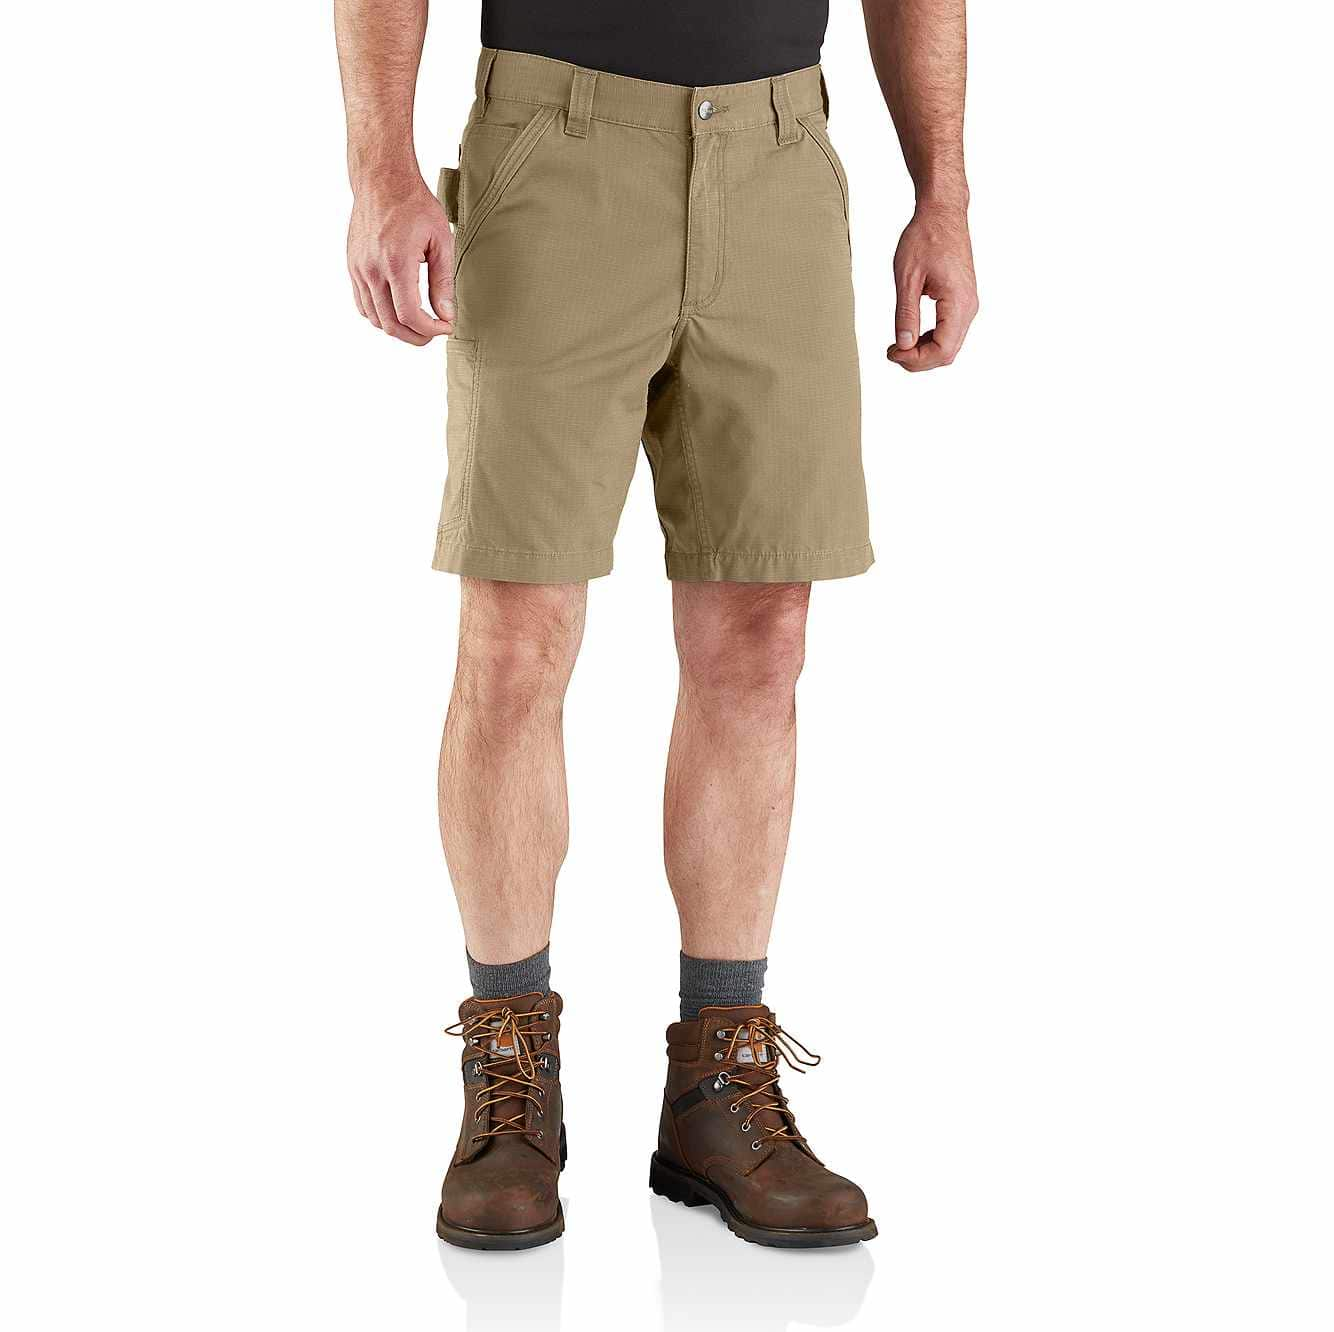 Picture of Force® Relaxed Fit Ripstop Short in Dark Khaki